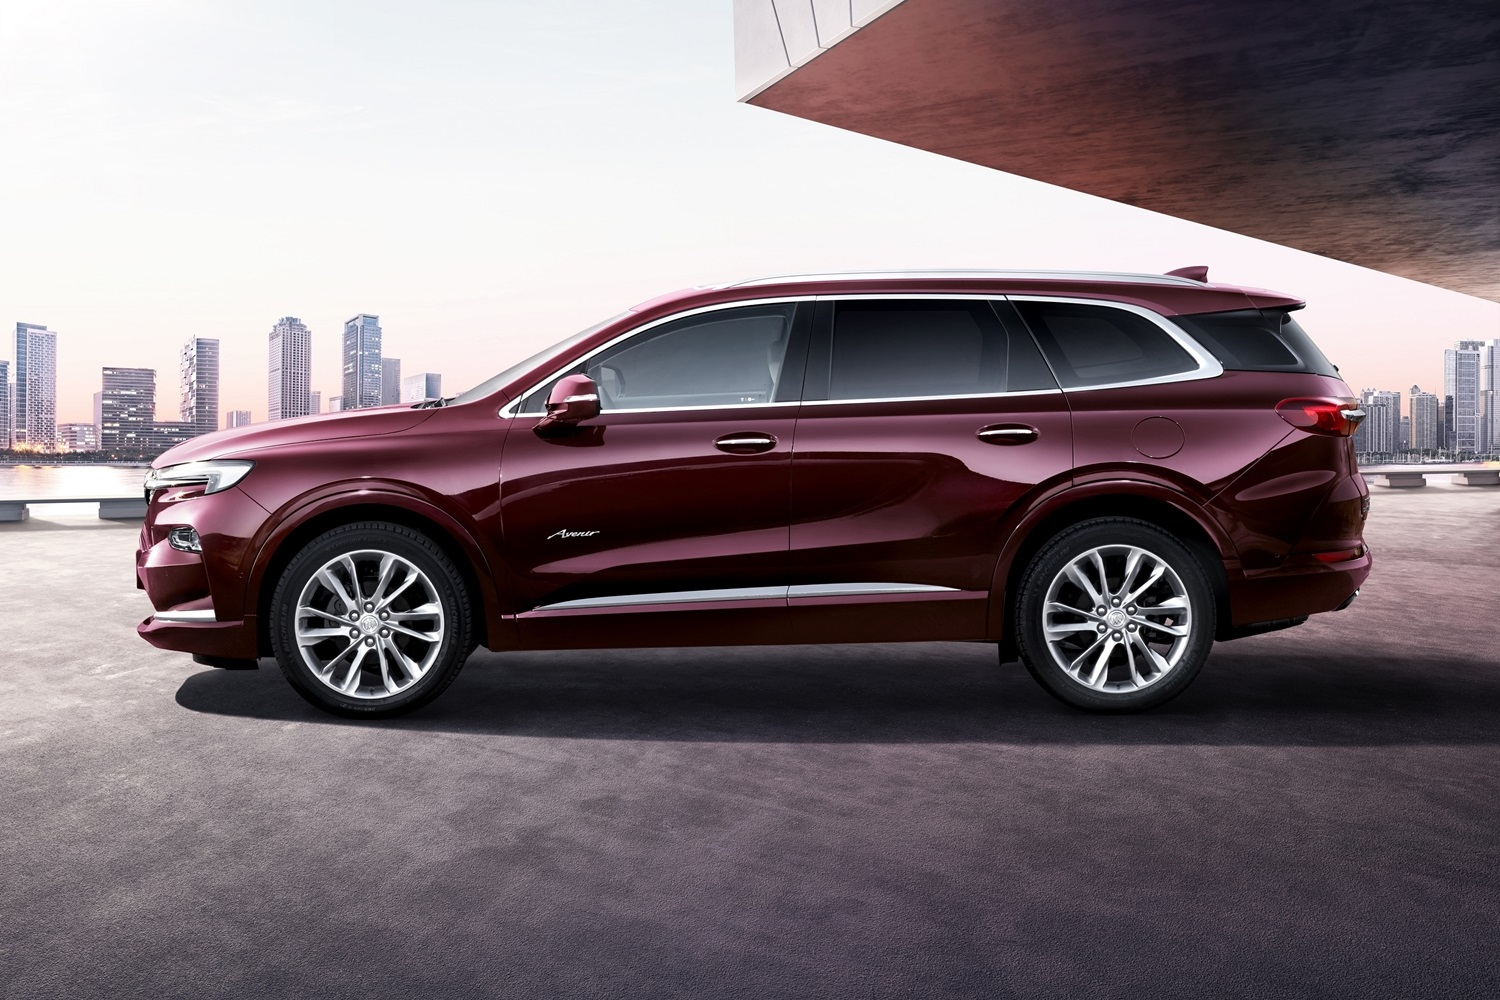 Gm Shows All-New China-Spec Buick Enclave Avenir | Gm Authority Build A New 2022 Buick Enclave Avenir